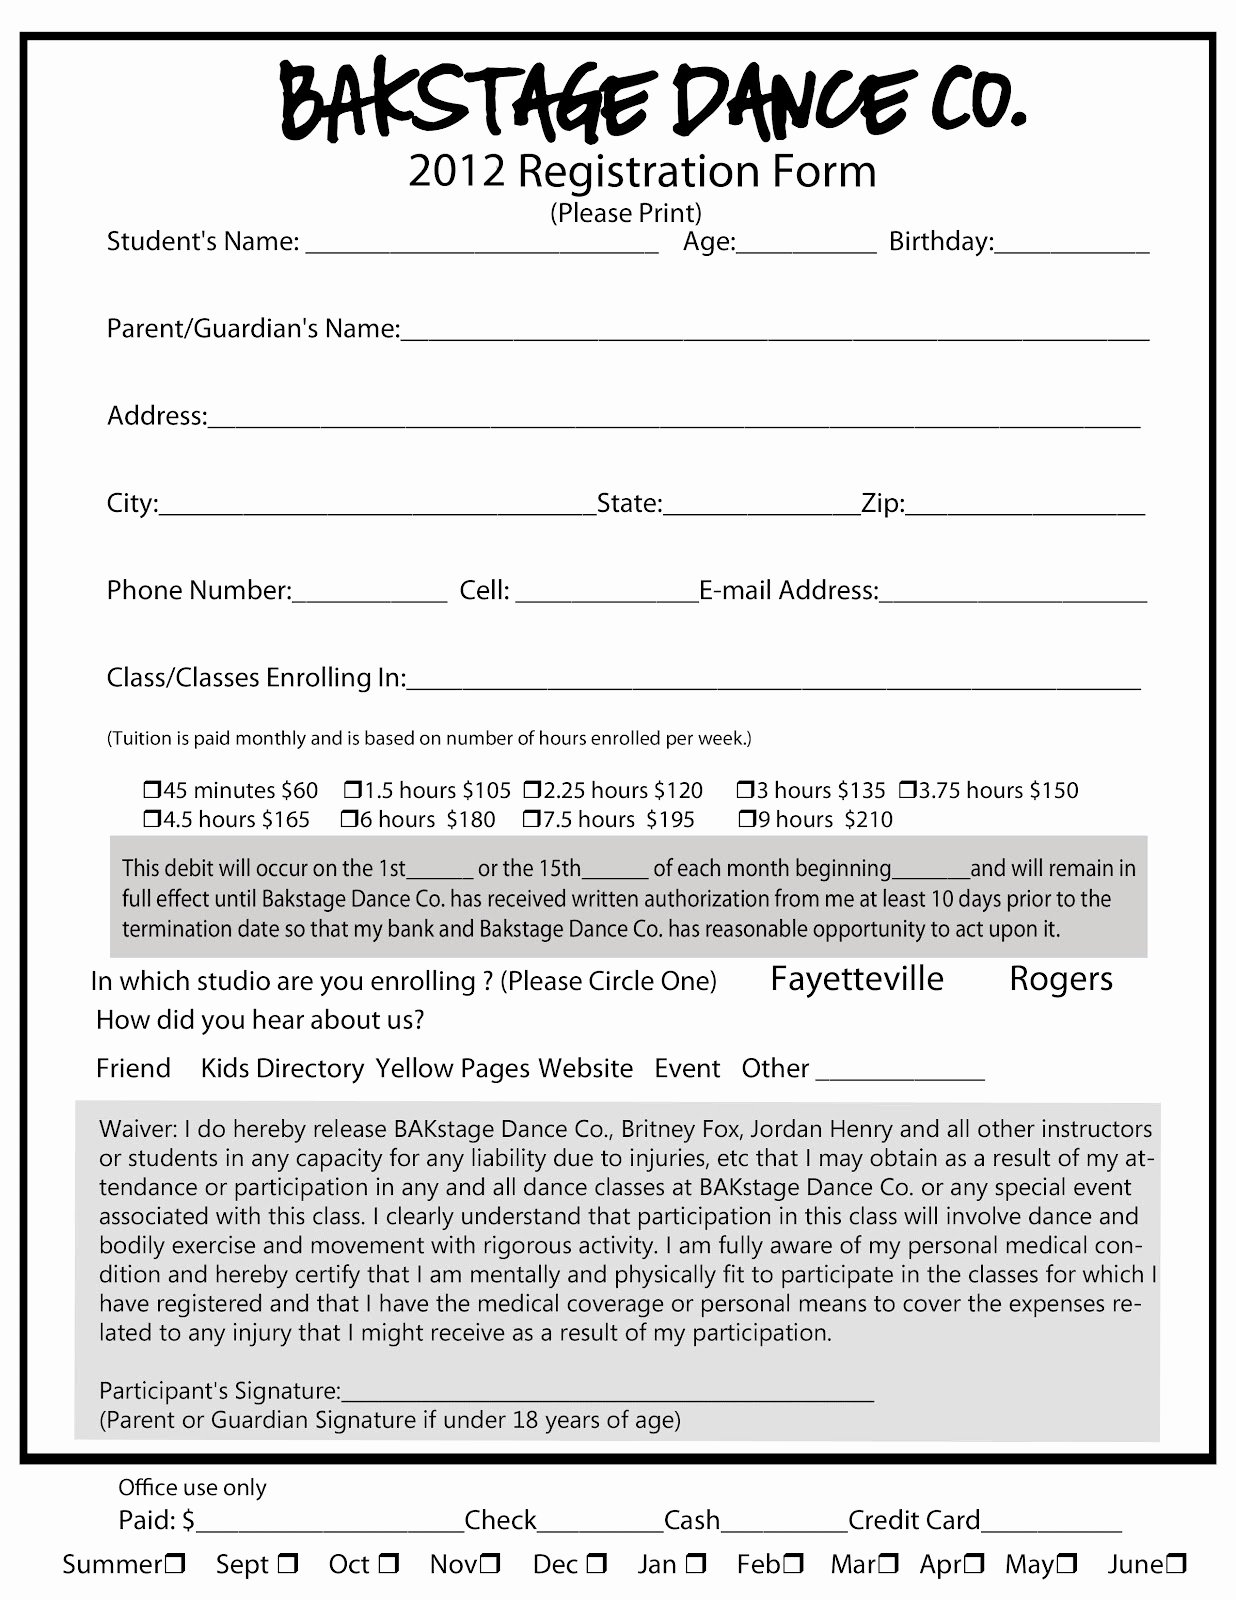 Dance Registration form Template New Luxury Printable Registration form Template